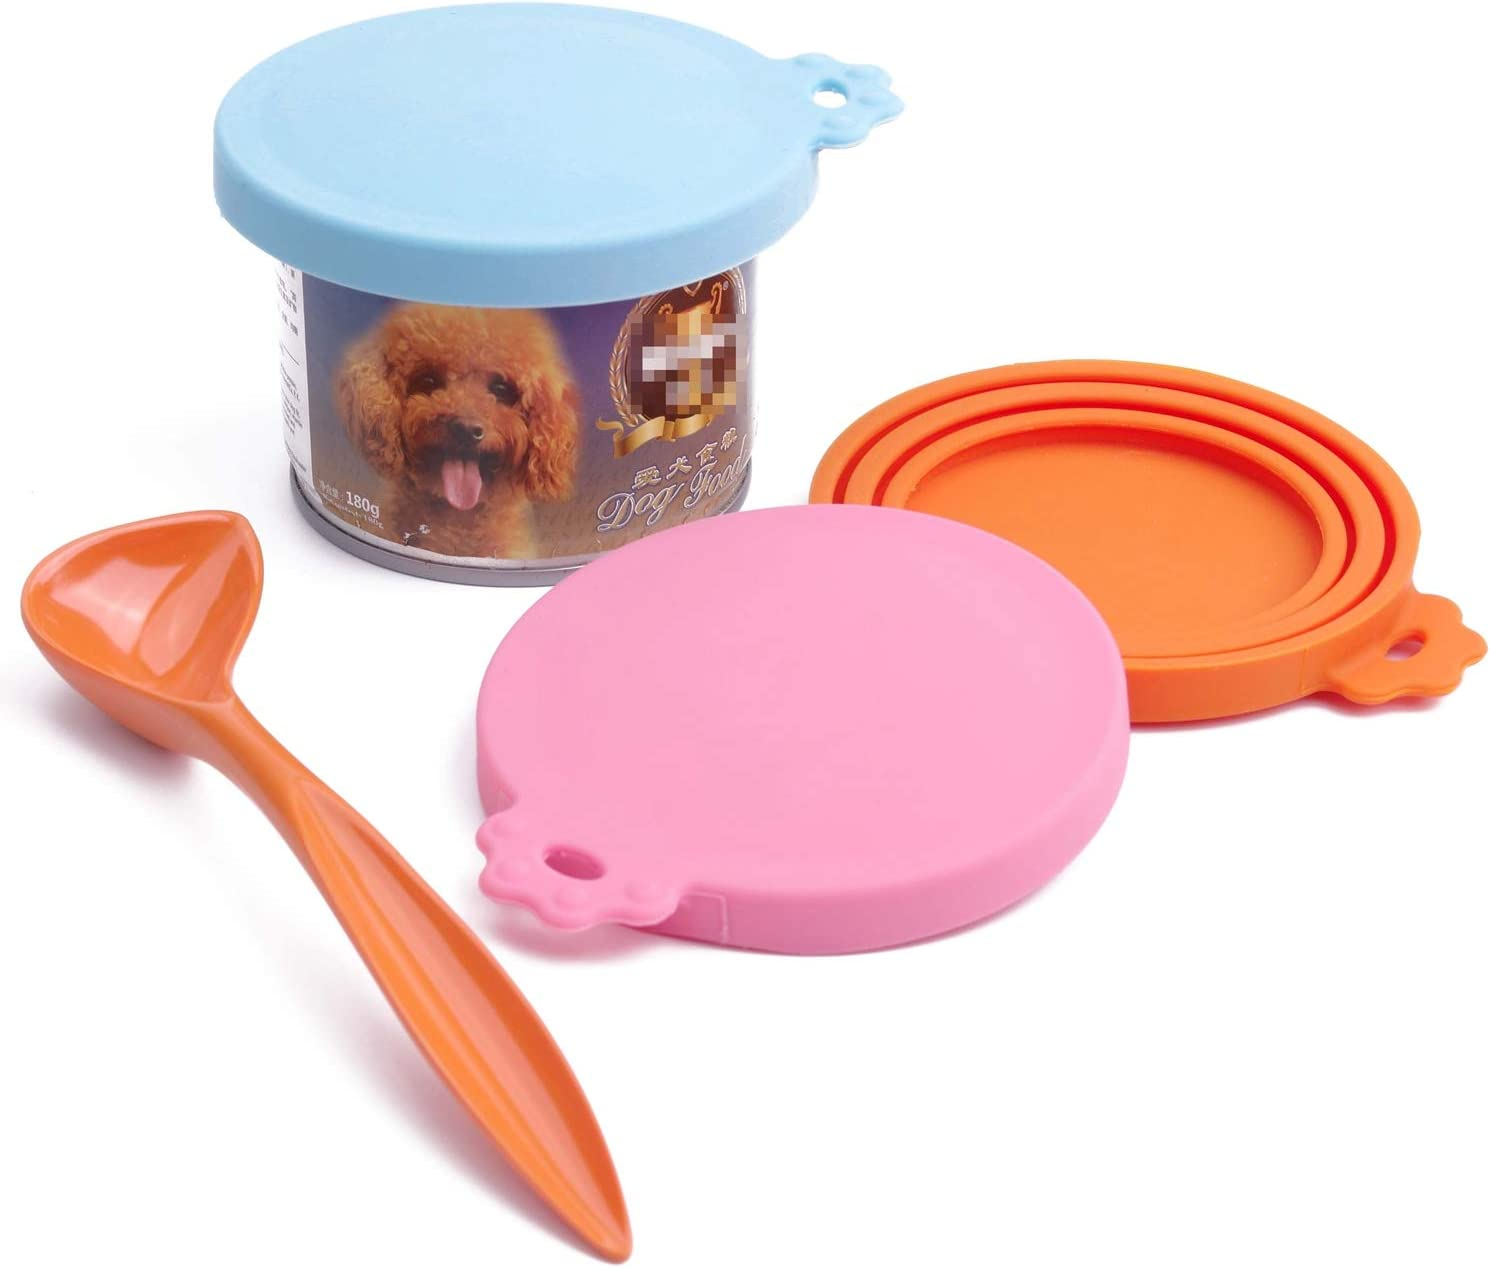 Super Design Can Covers Scoop Packaging,BPA Free Silicone Can Cover for Multiple Sizes with Melamine Food Scoop,for Dog and Cat, Small Scoop